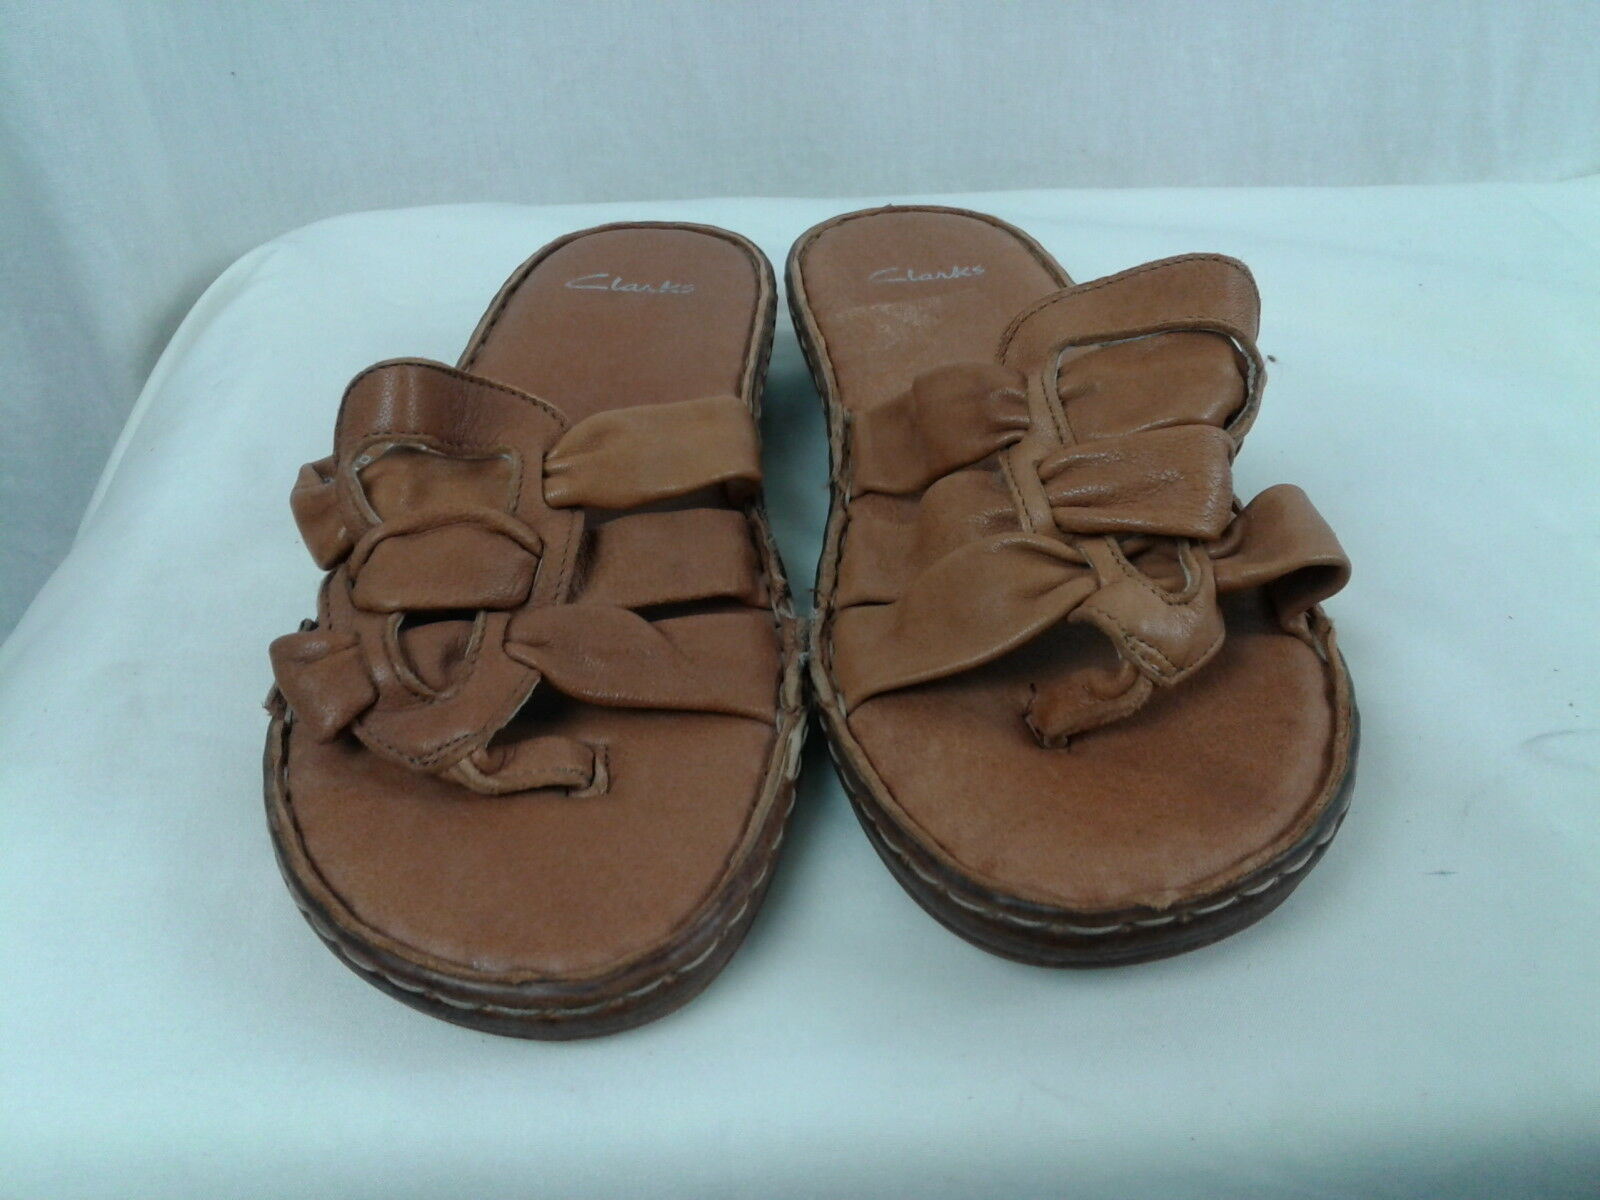 Clarks size Tan Leather Thong Sandals size Clarks 7 M 94f5c6